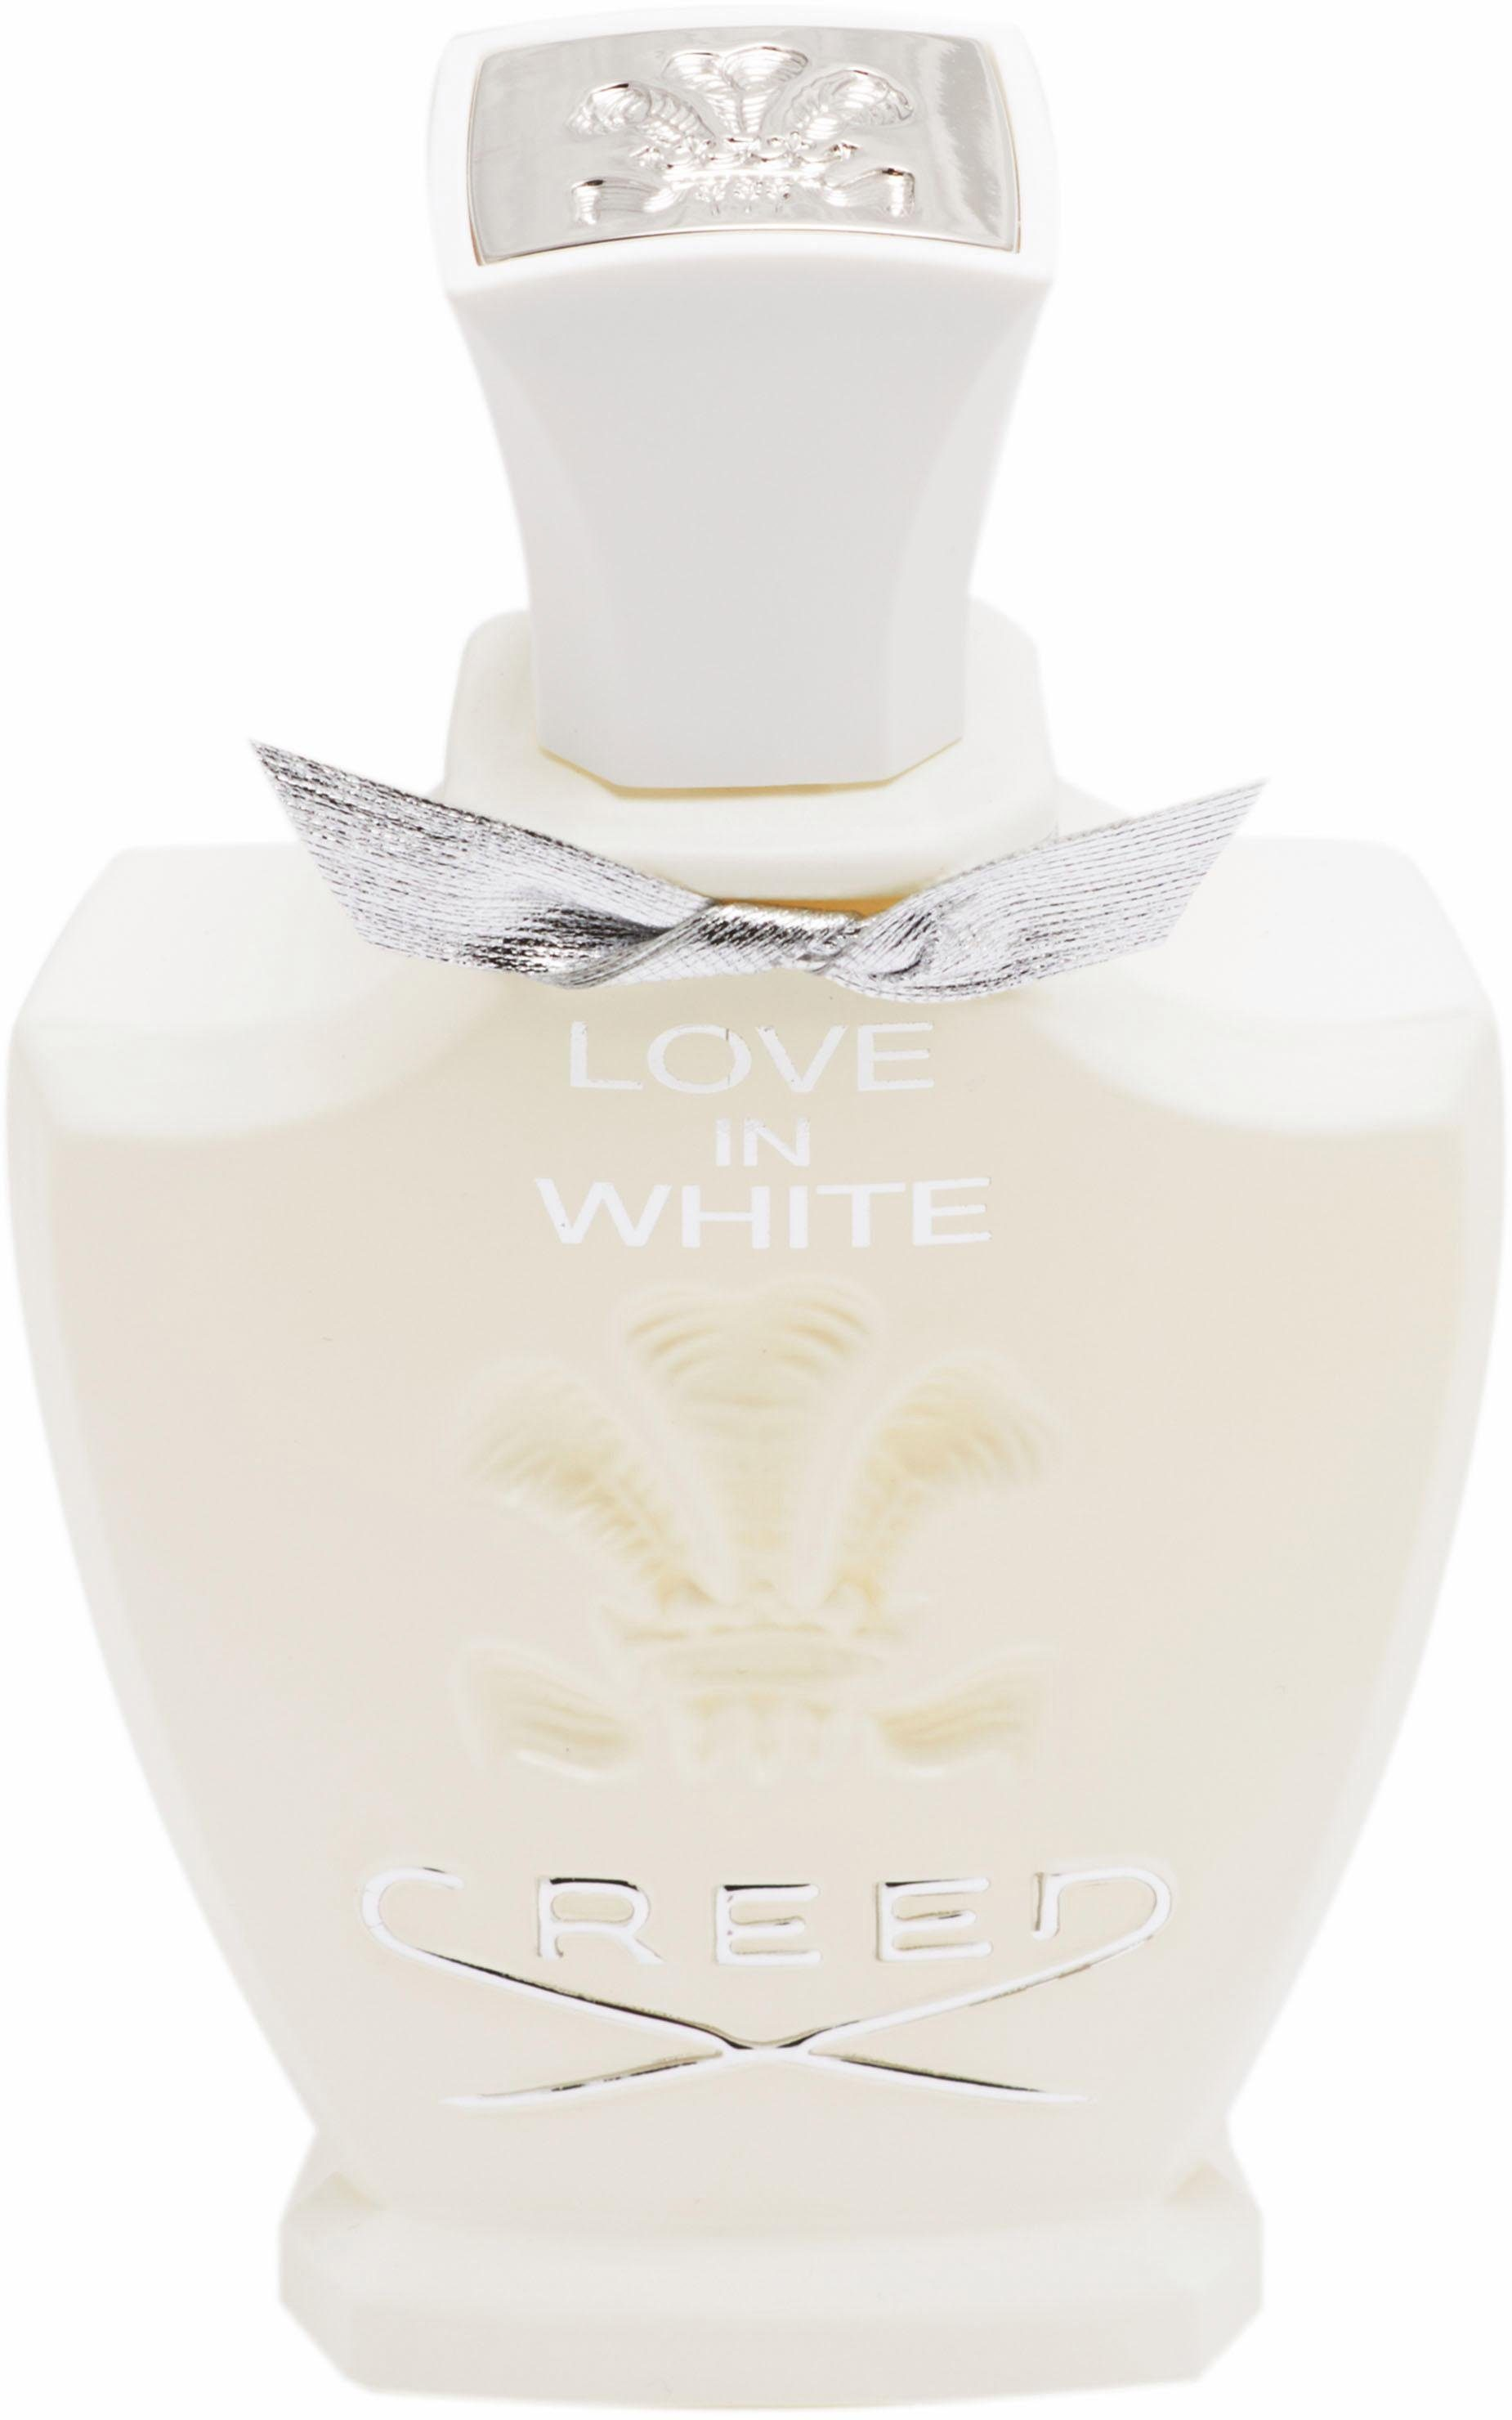 Creed »Love in White« Eau de Parfum